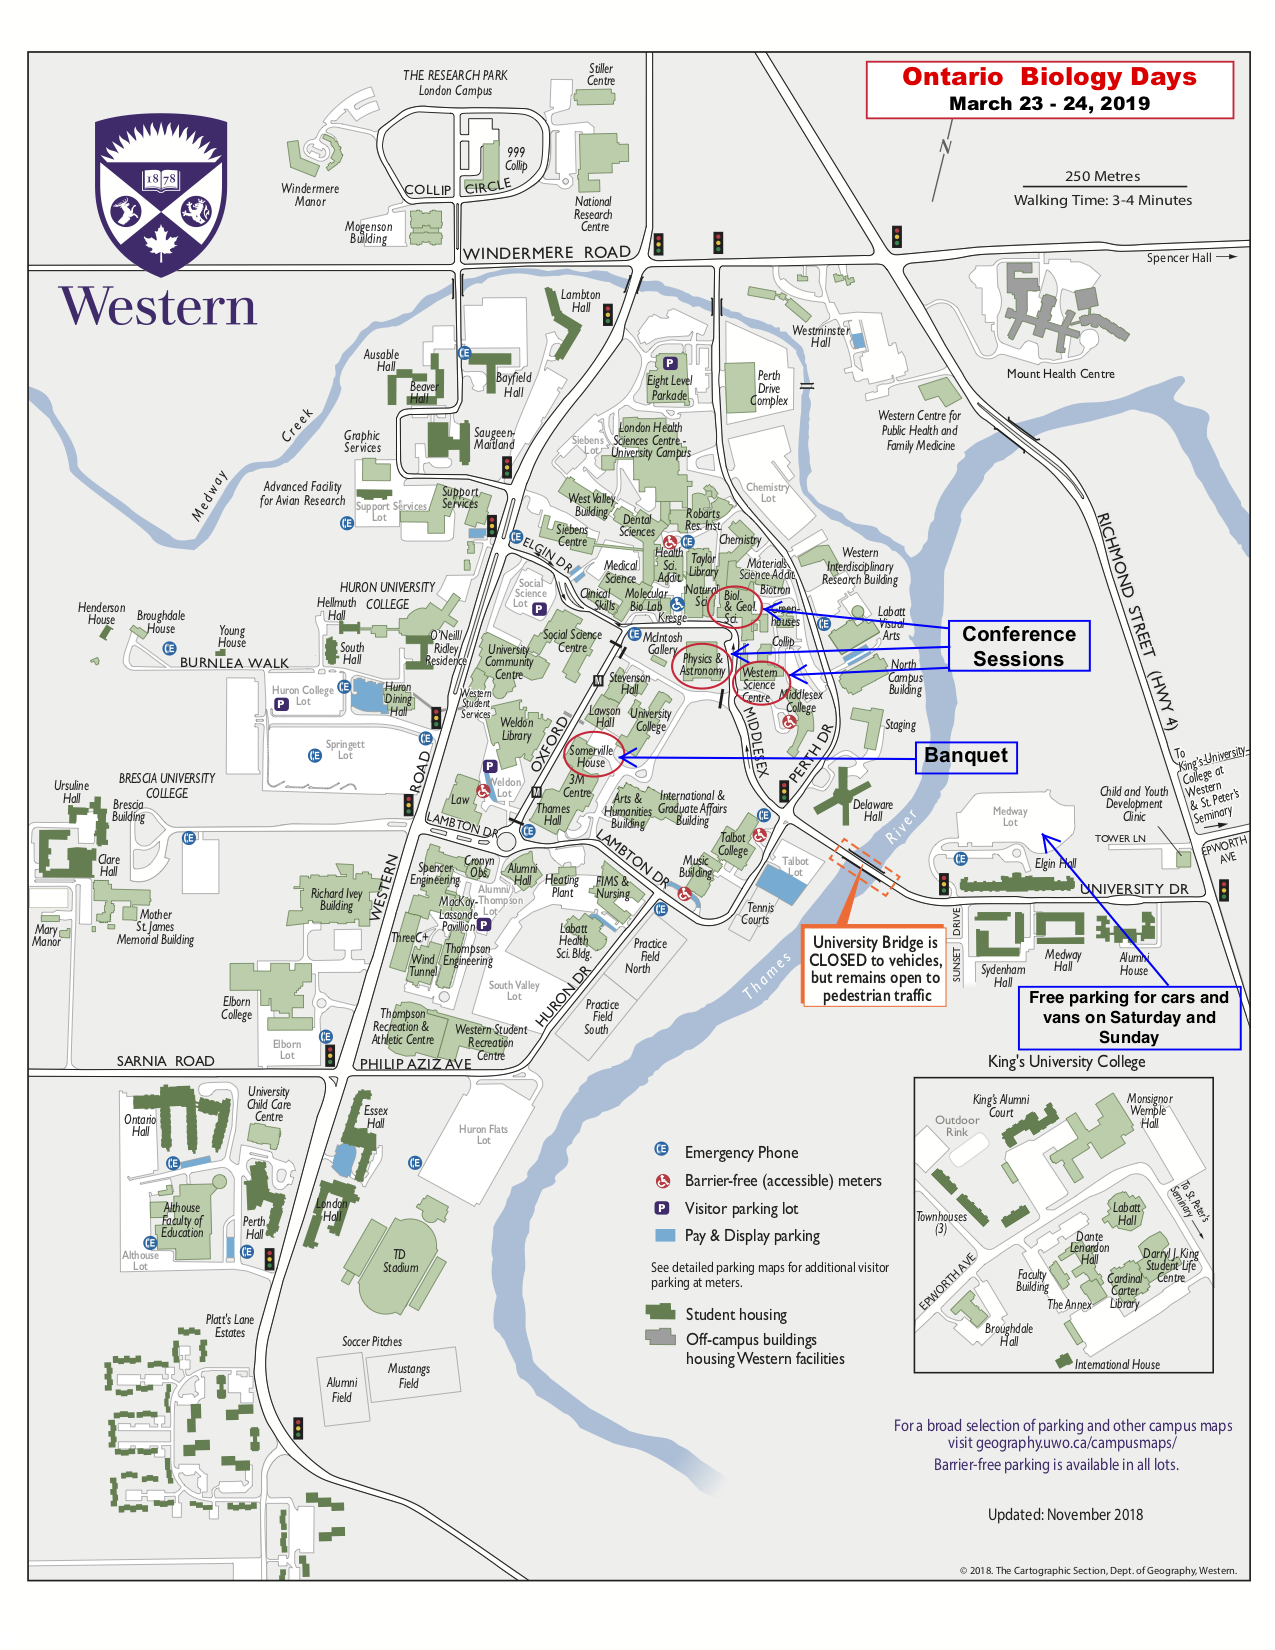 university of western ontario campus map Western University university of western ontario campus map